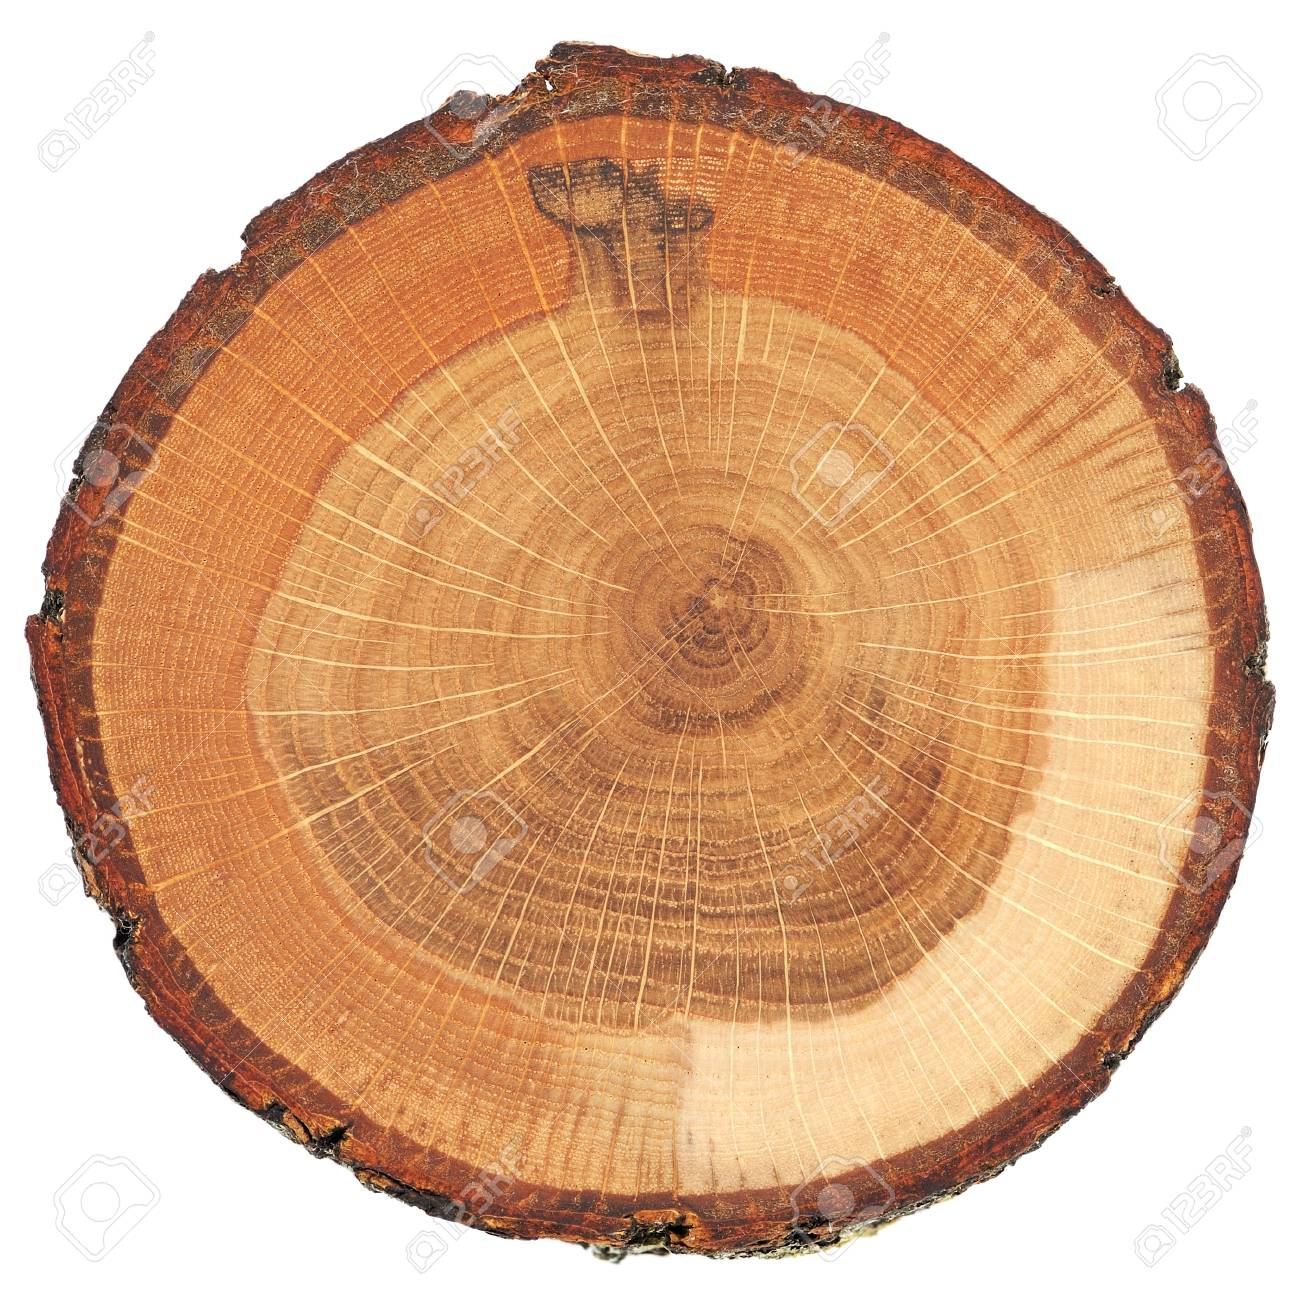 Cracked oak split with bark isolated overhead view - 91543061